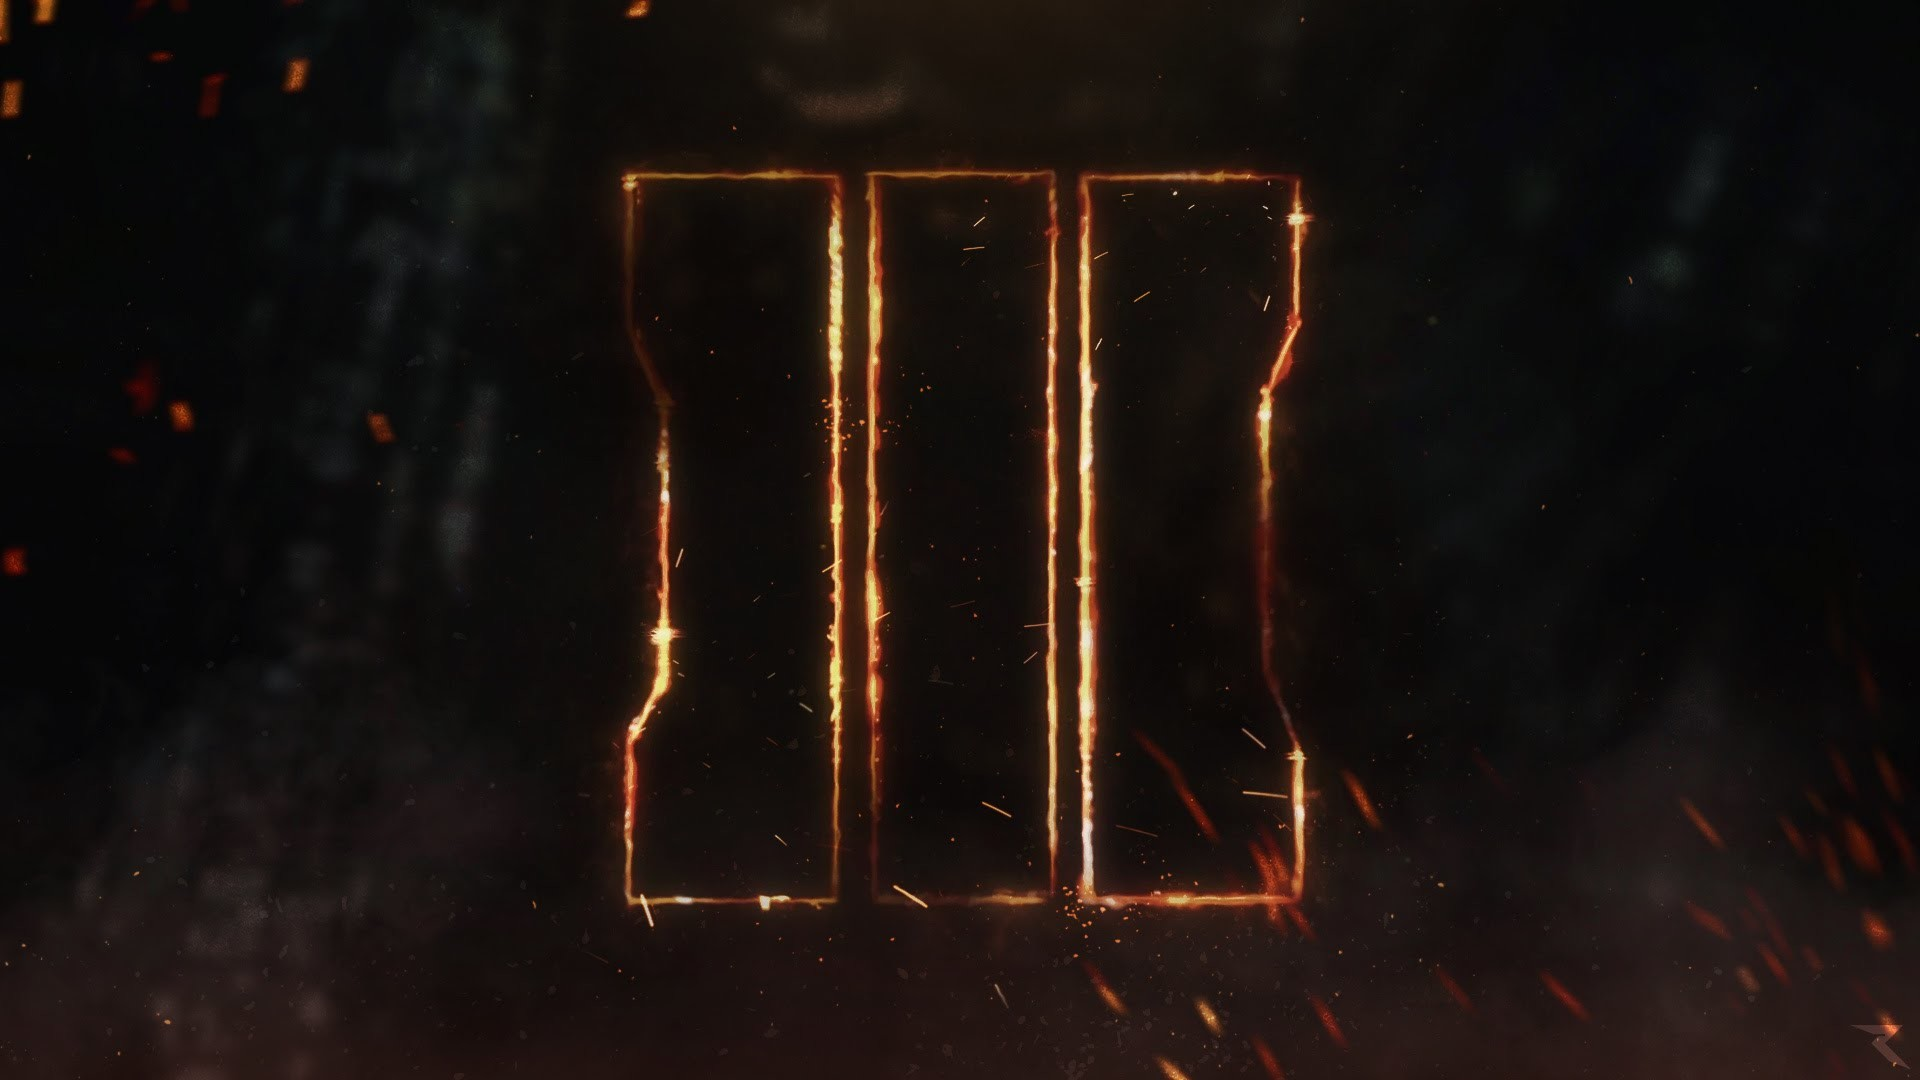 1920x1080 Free Call of Duty Black Ops 3 Wallpaper - Speedart by BTR Designs - YouTube